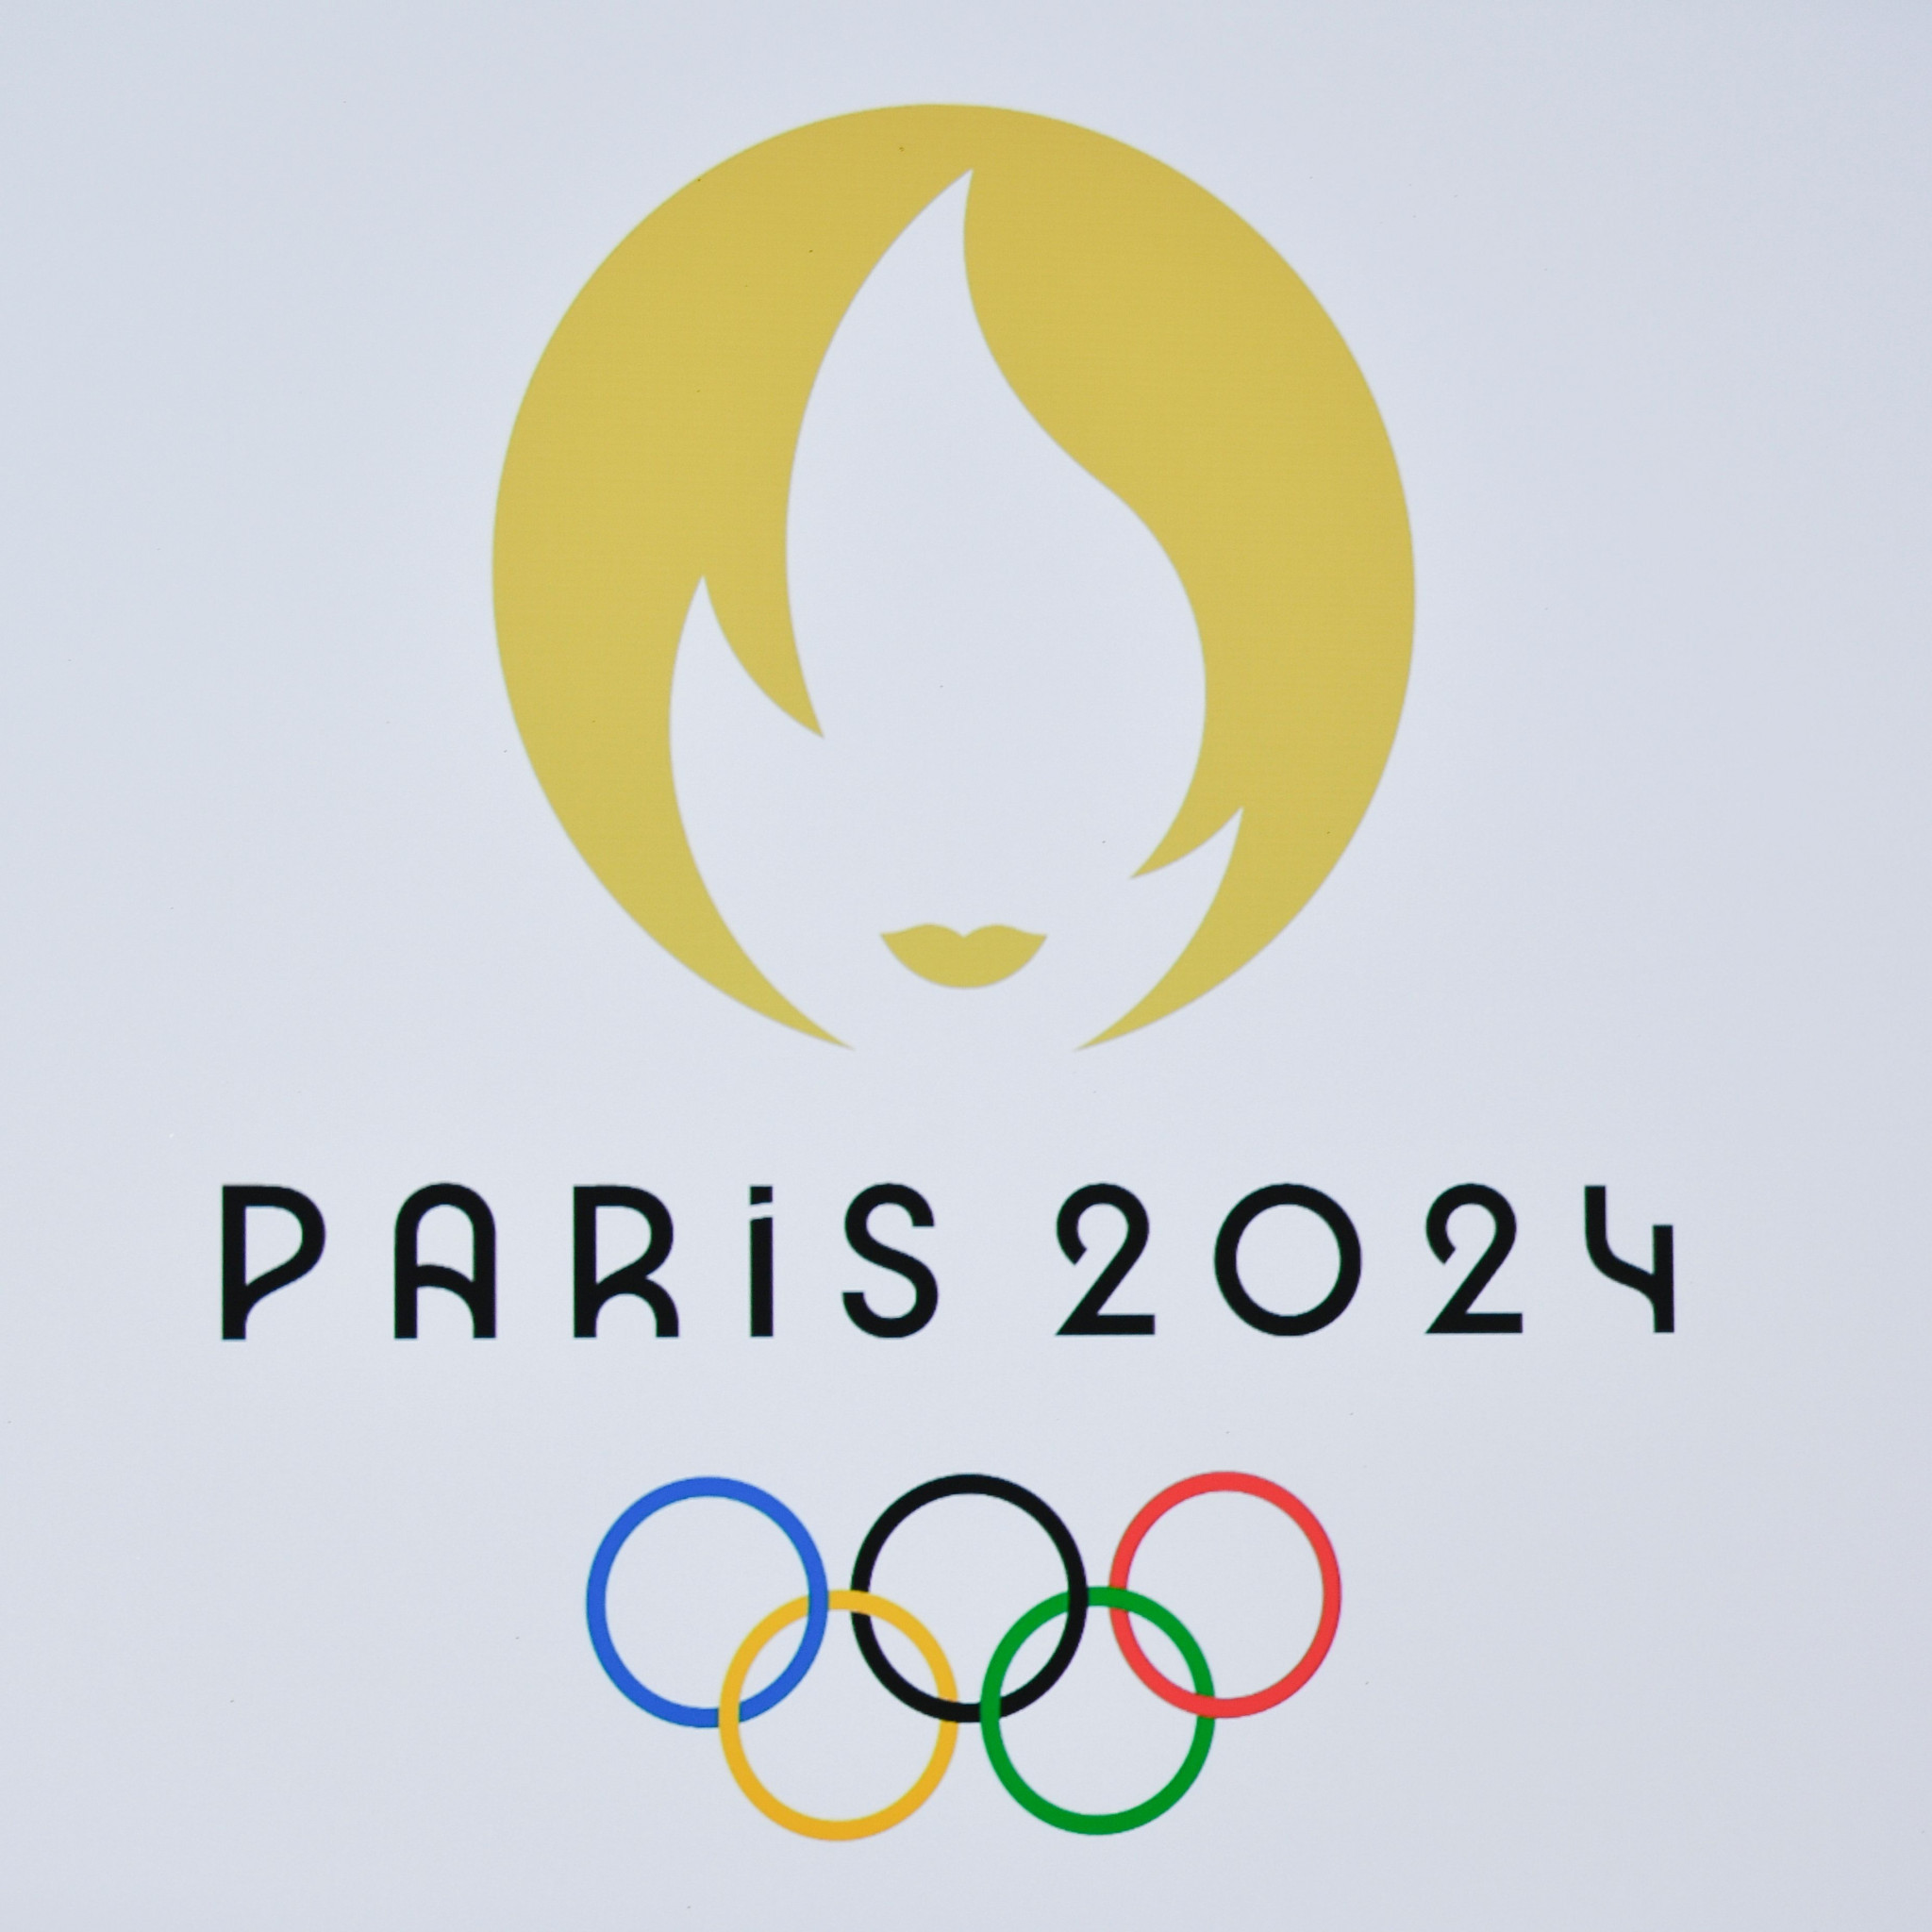 Paris 2024 organisers have pledged to host the world's first climate positive Olympic and Paralympic Games ©Getty Images